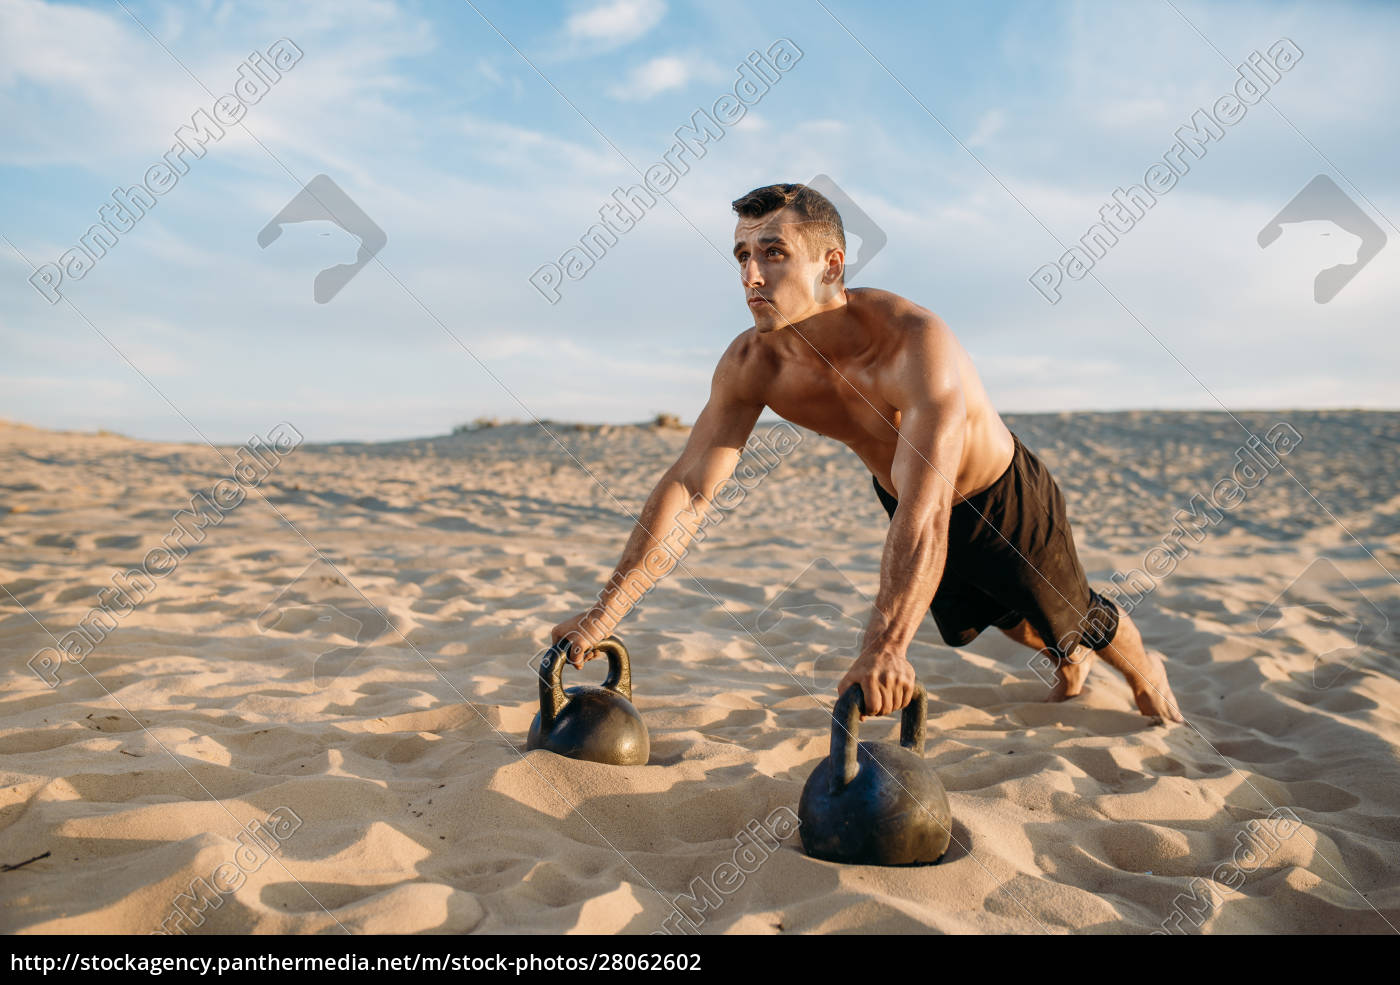 male, athlete, doing, push-up, exercises, in - 28062602